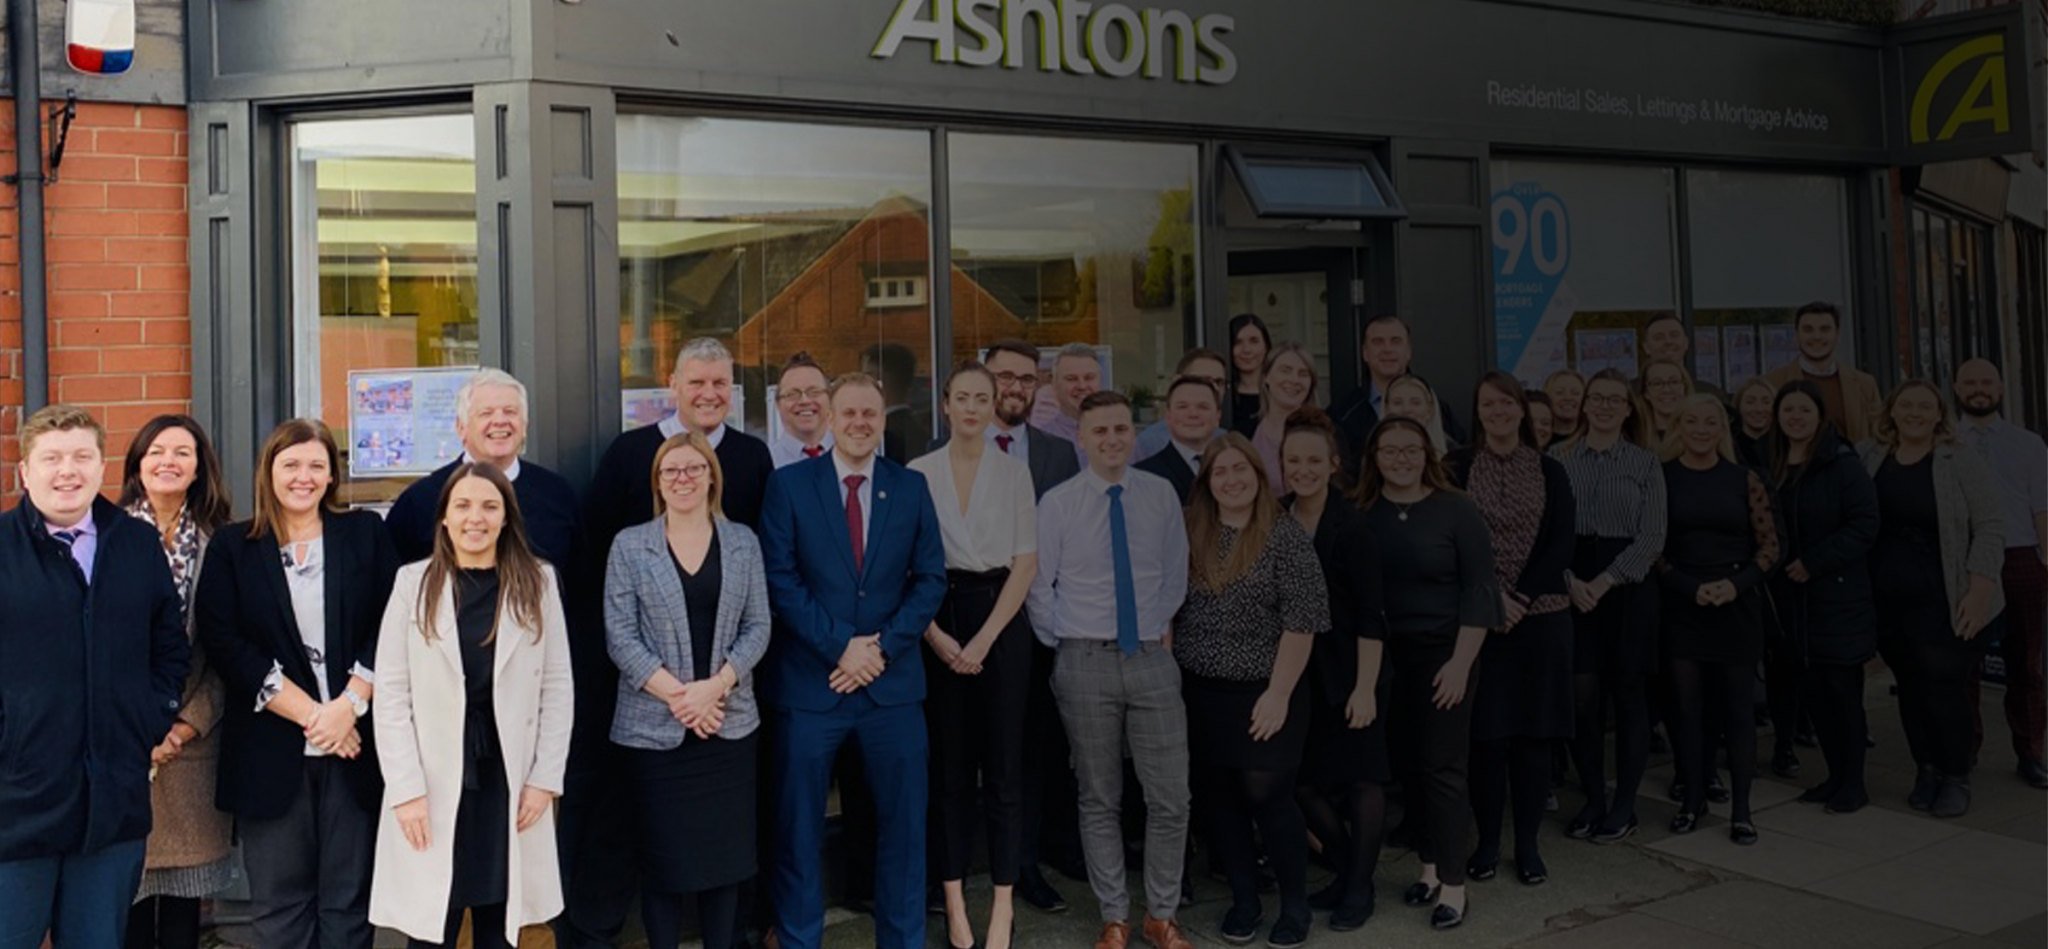 Ashtons Staff Warrington, StHelens and Wigan, Sell my home with Ashtons, How much is my home worth, Best Local estate agent